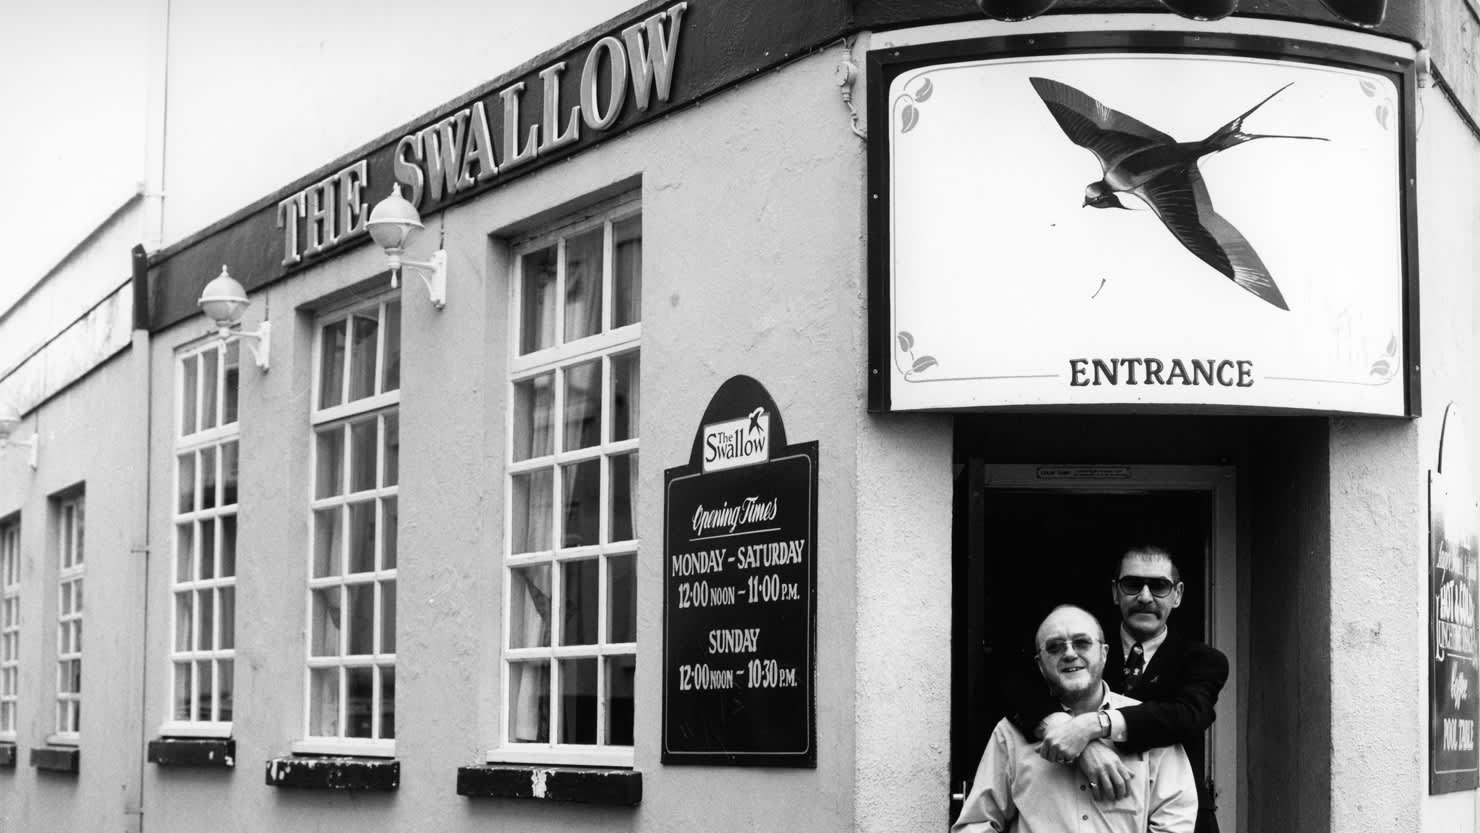 Black and white image of two men standing together in the entrance of The Swallow pub in Plymouth